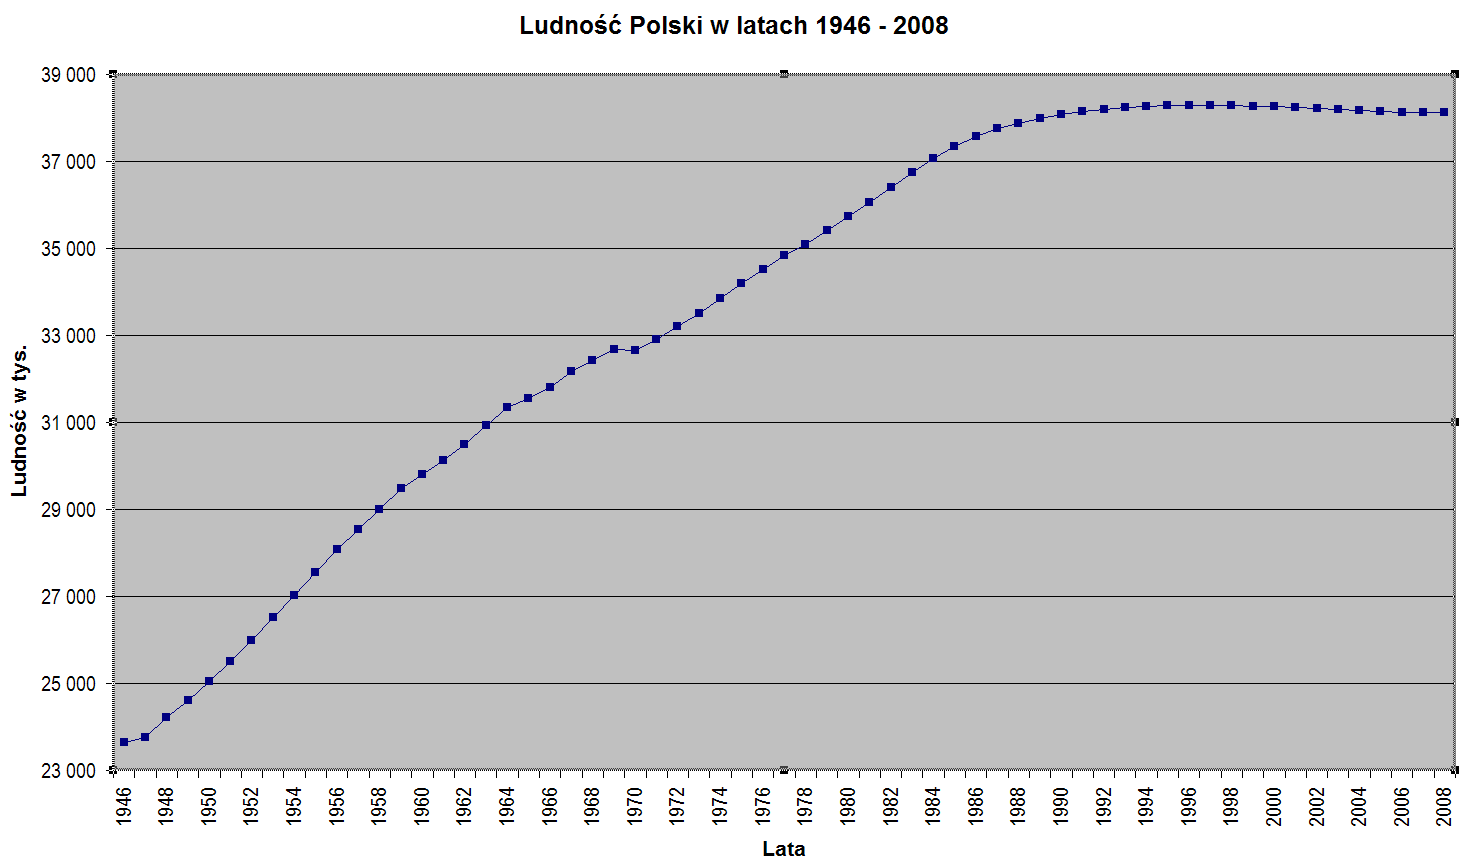 Poland-demography_1946-2008.png